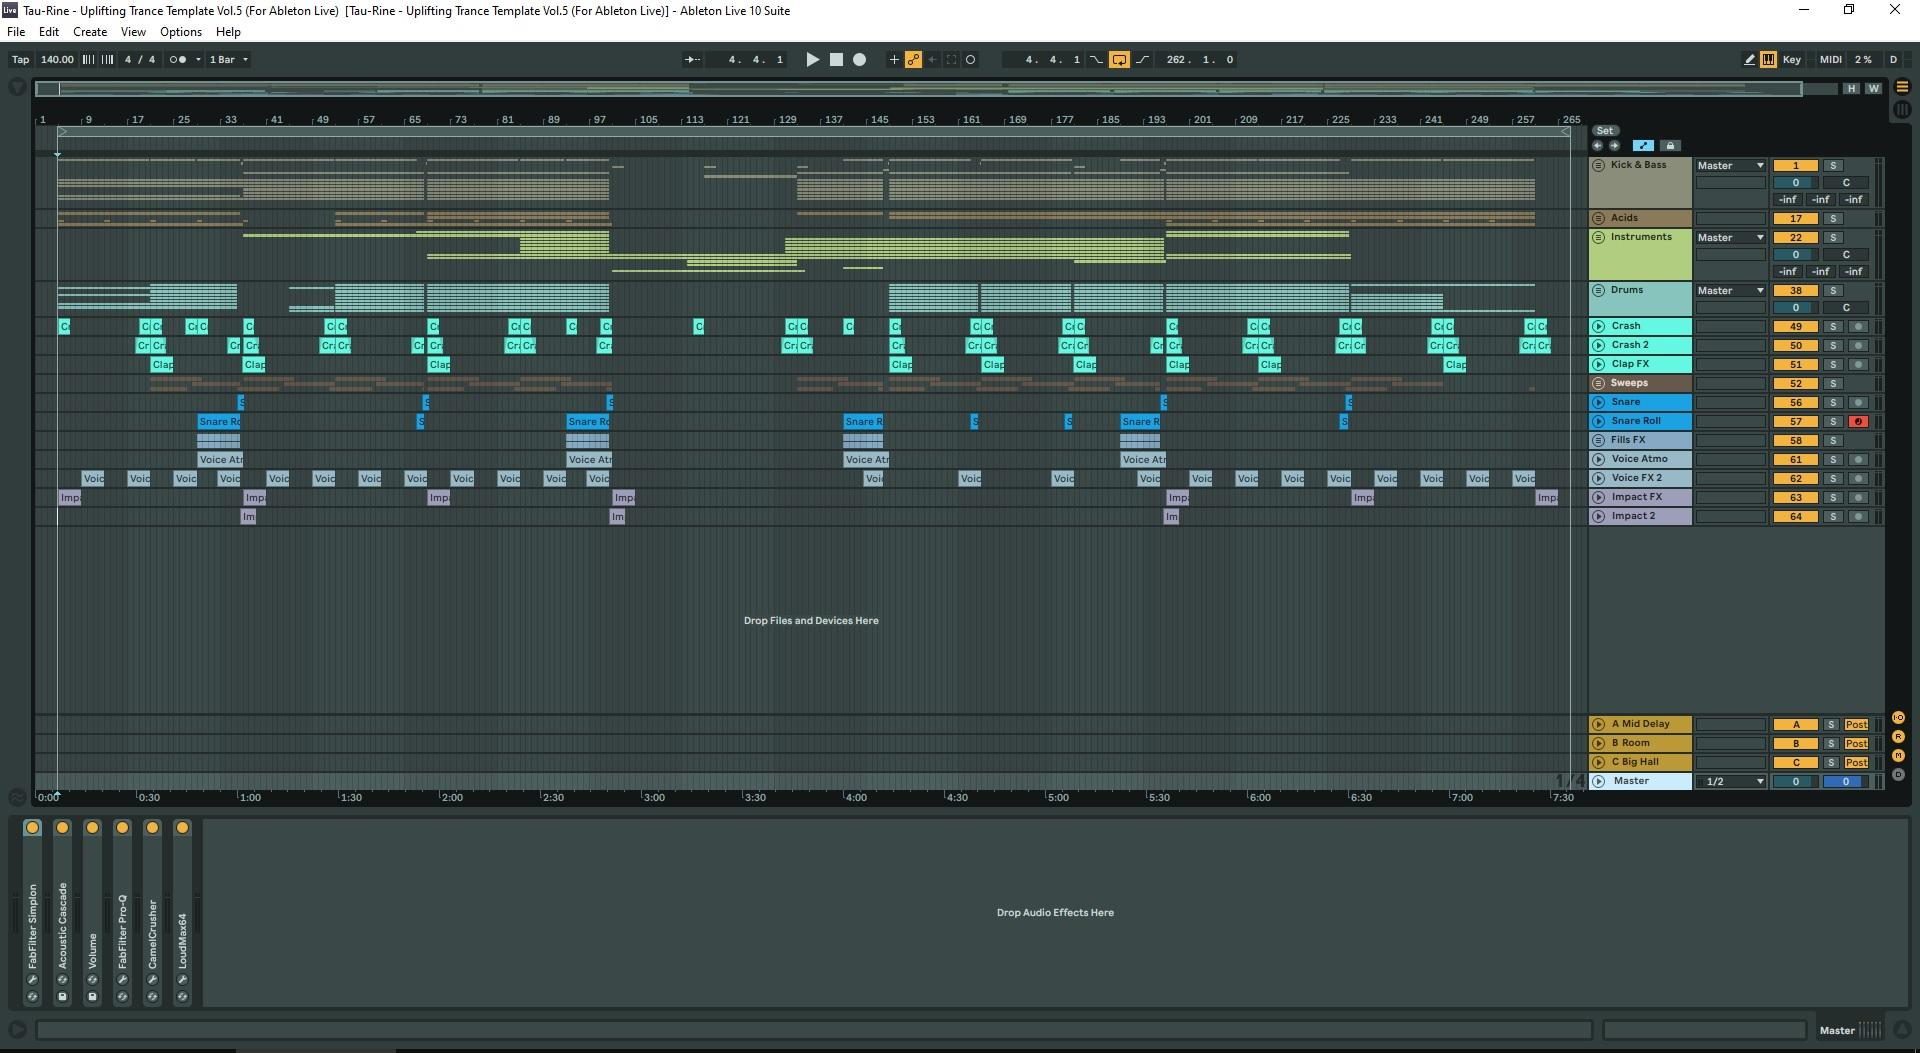 tau-rine-uplifting-trance-template-vol-5-for-ableton-live-screen